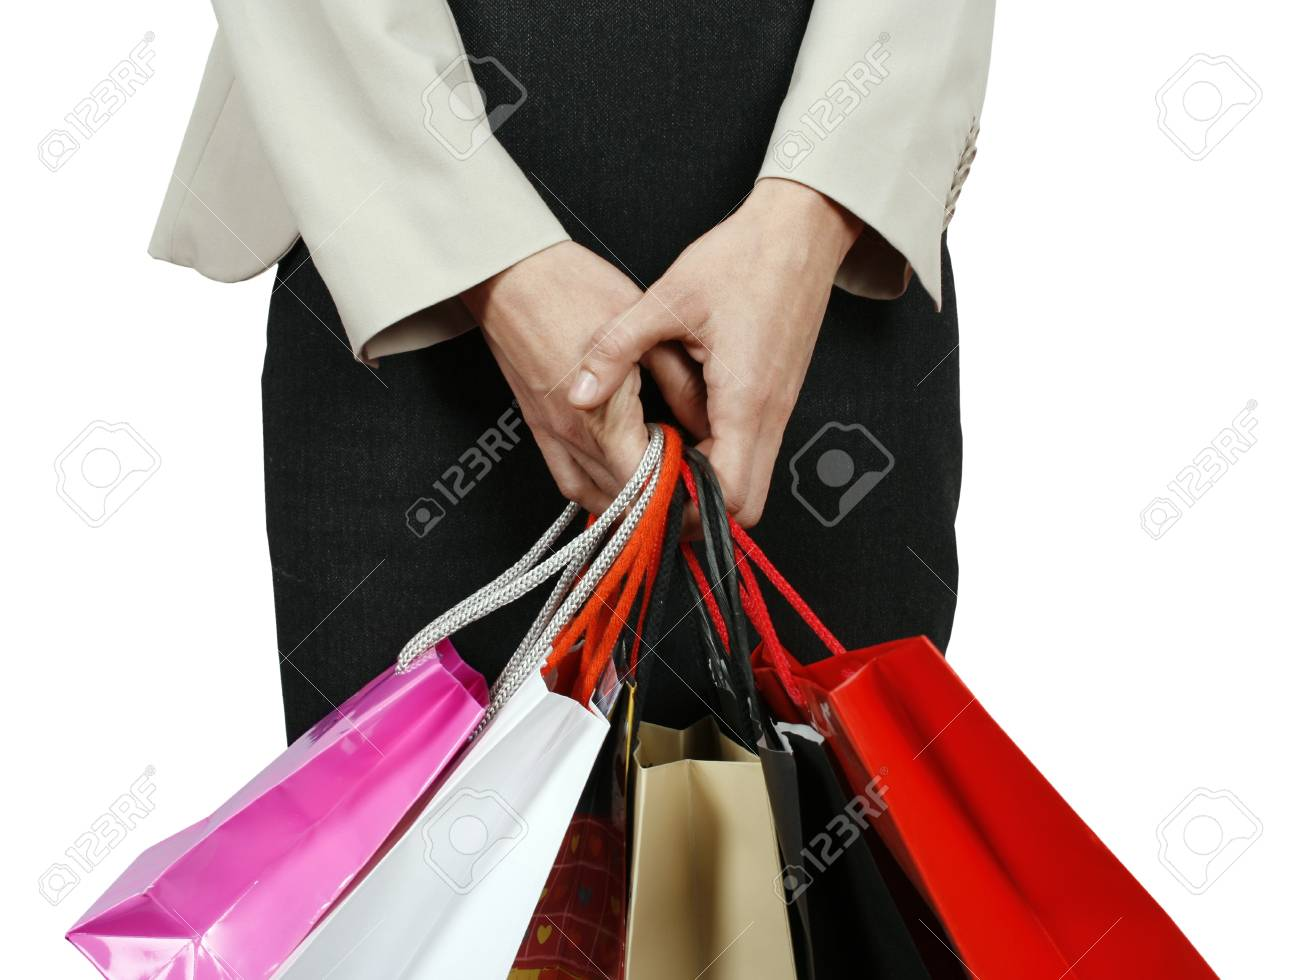 Woman with shopping bags isolated on white background Stock Photo - 17872330